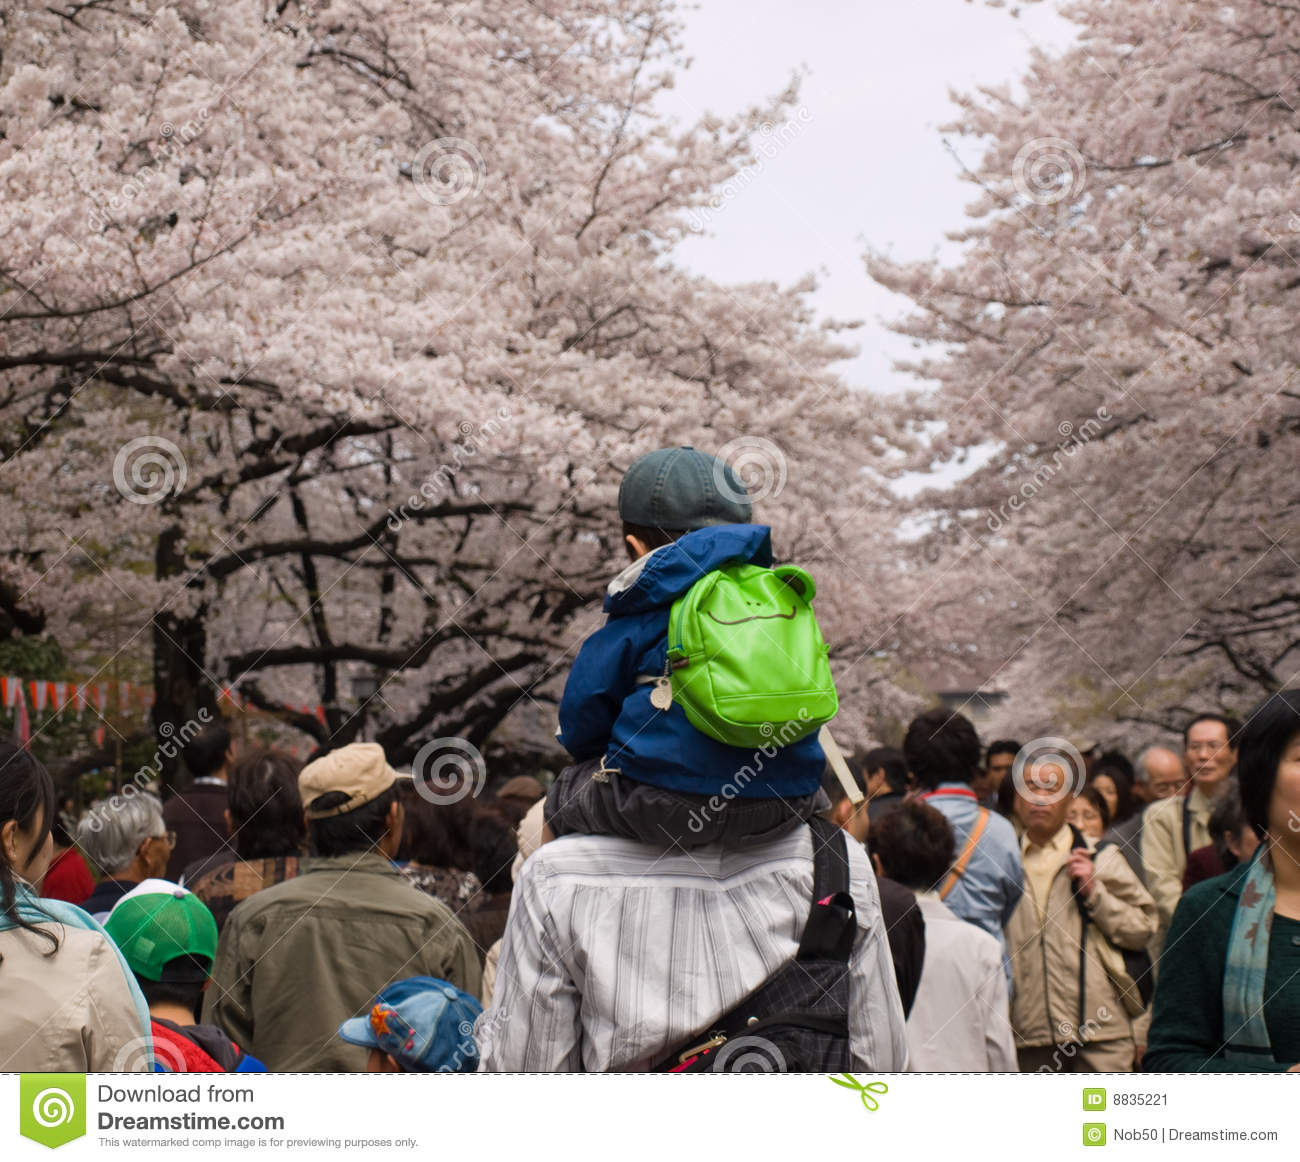 People enjoying cherry blossoms in Japan